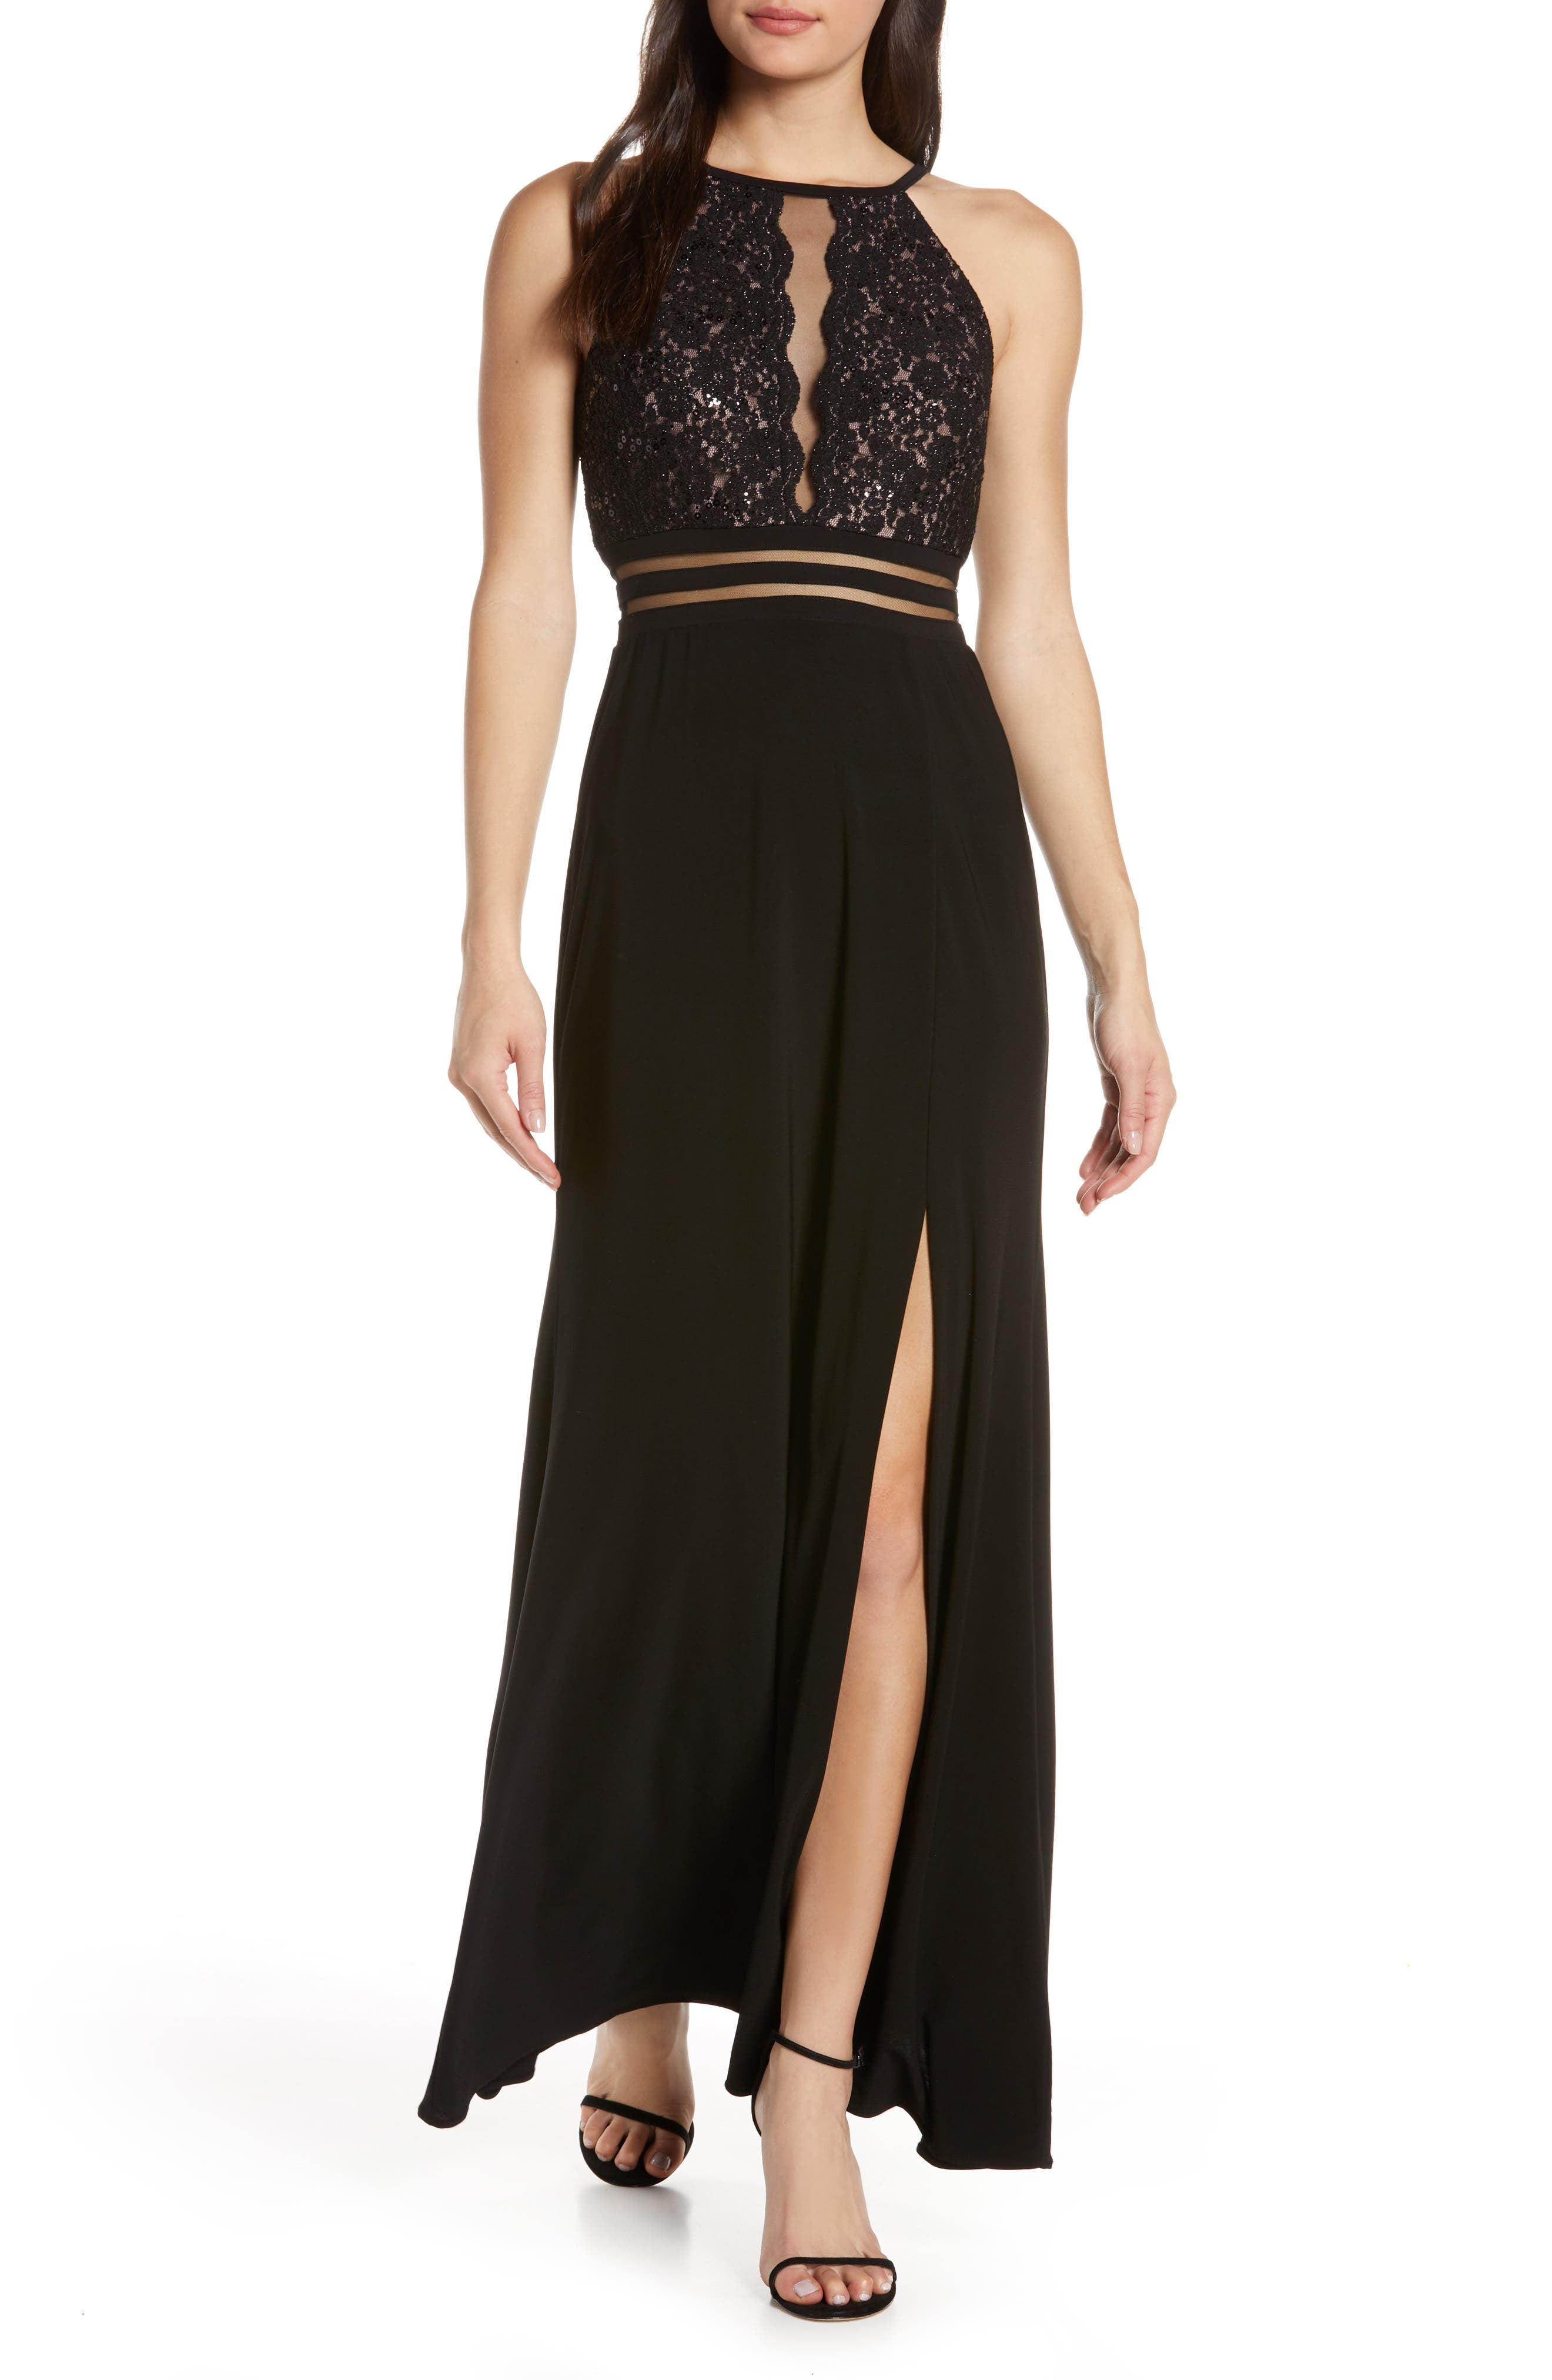 Morgan & Co. Scallop Lace Bodice Evening Dress, Black